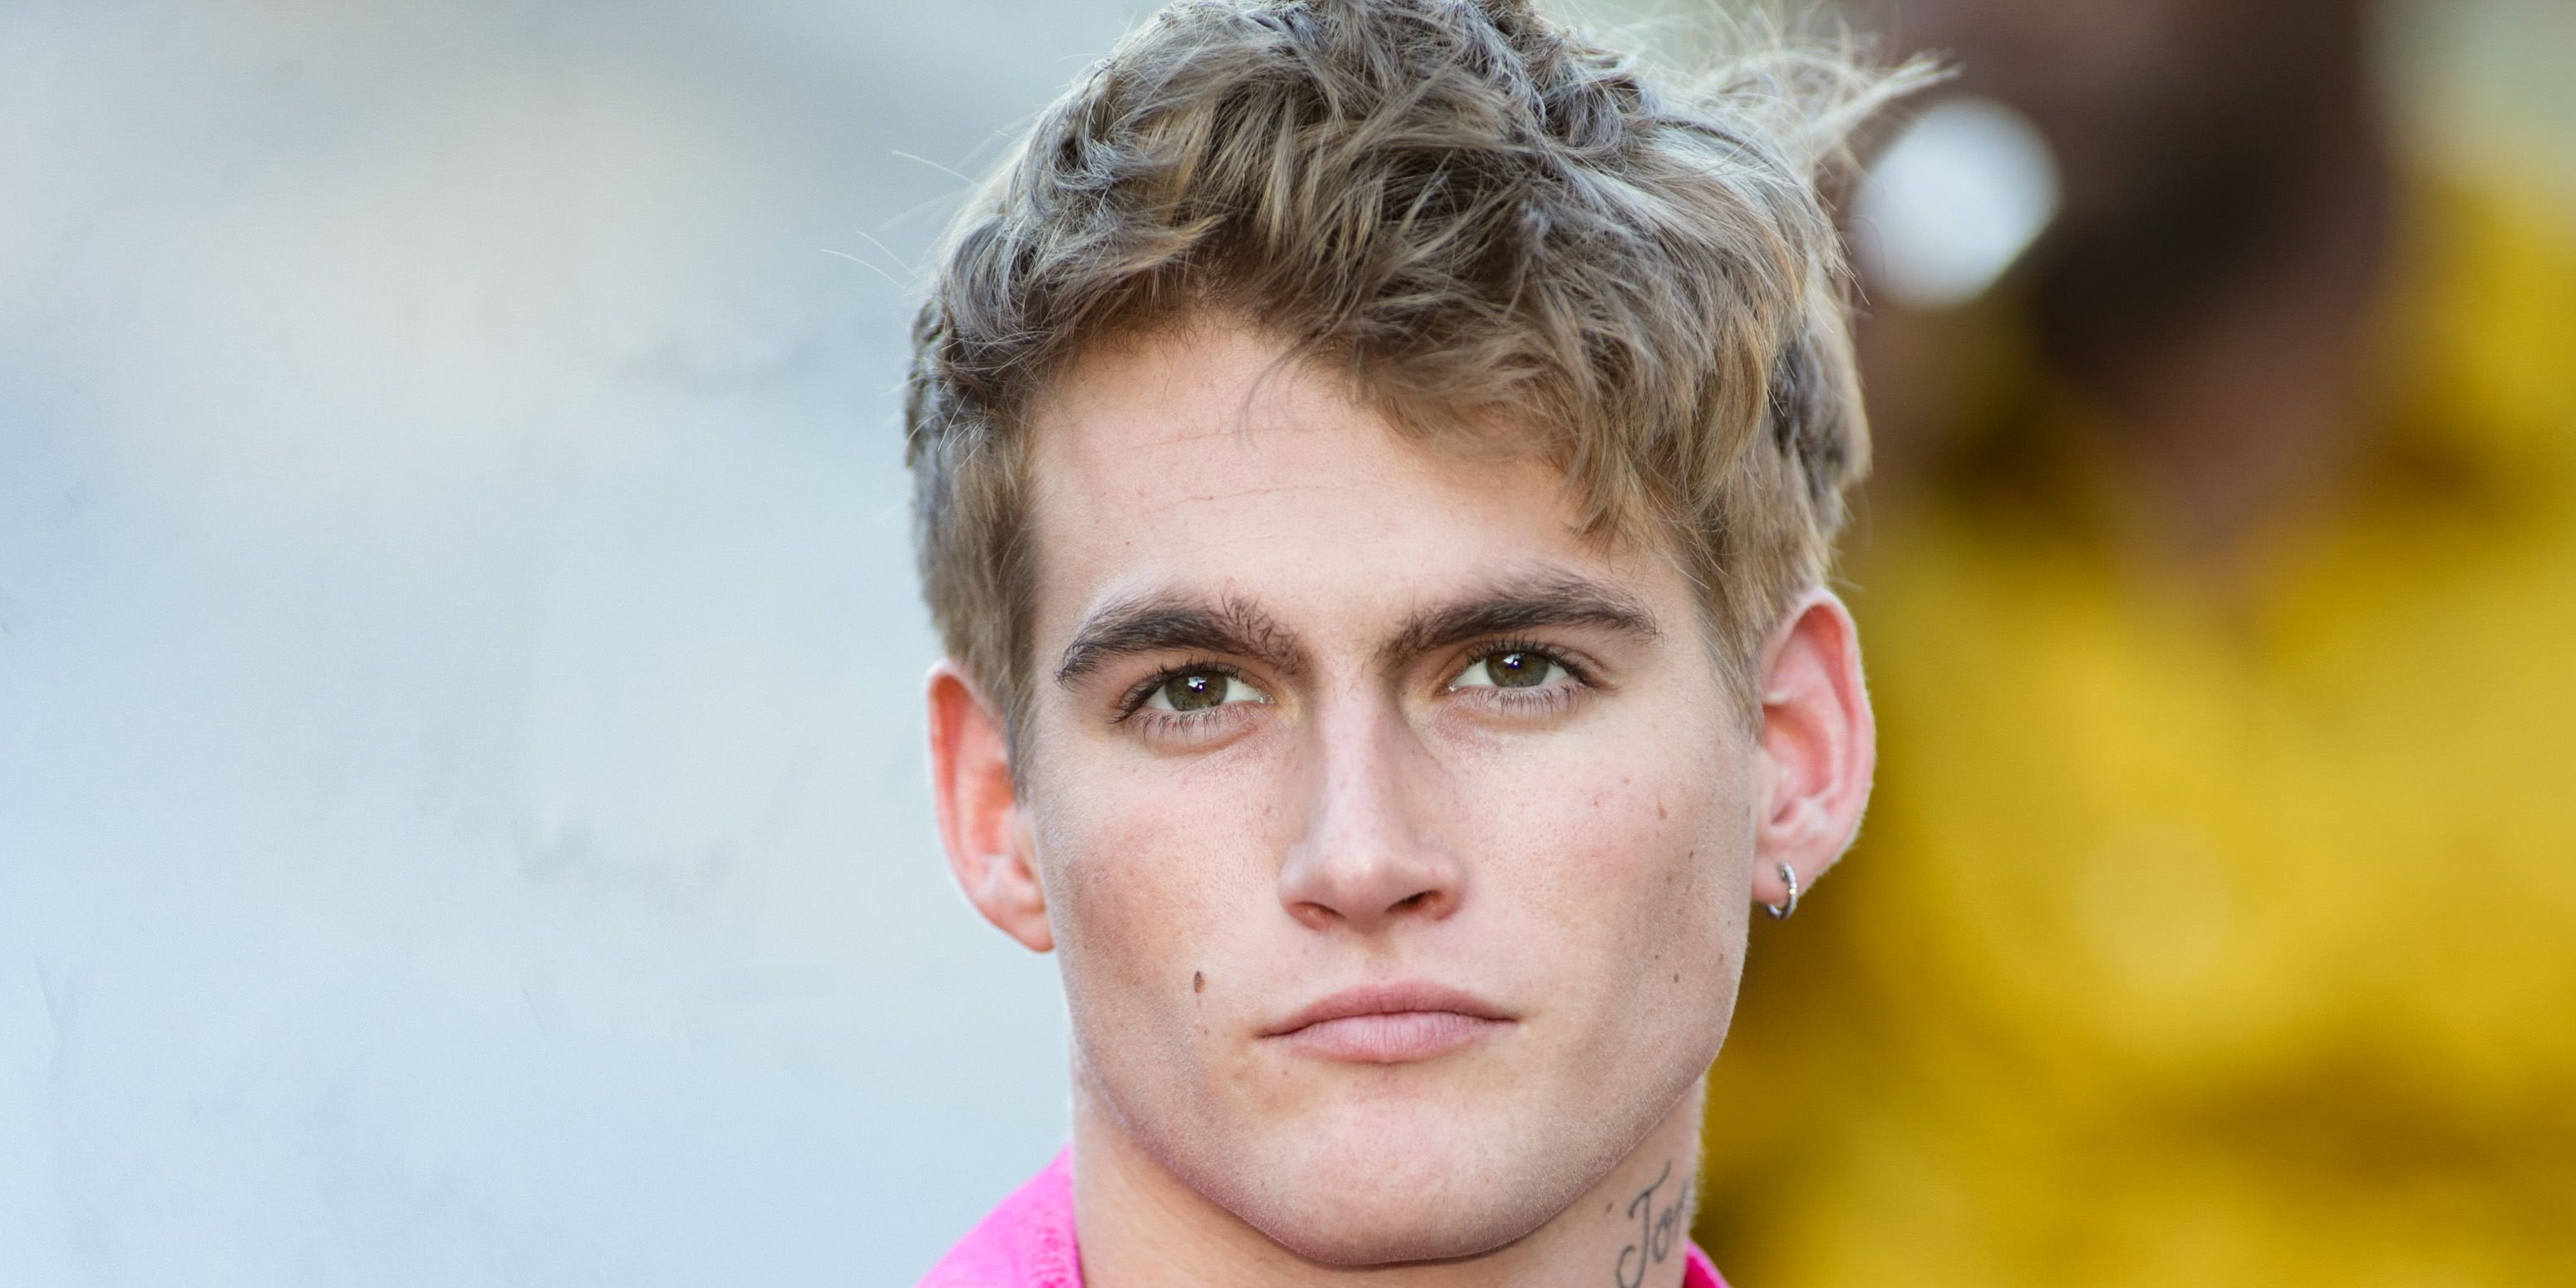 Cindy Crawford's Son, Presley Gerber, Got a Tattoo on His